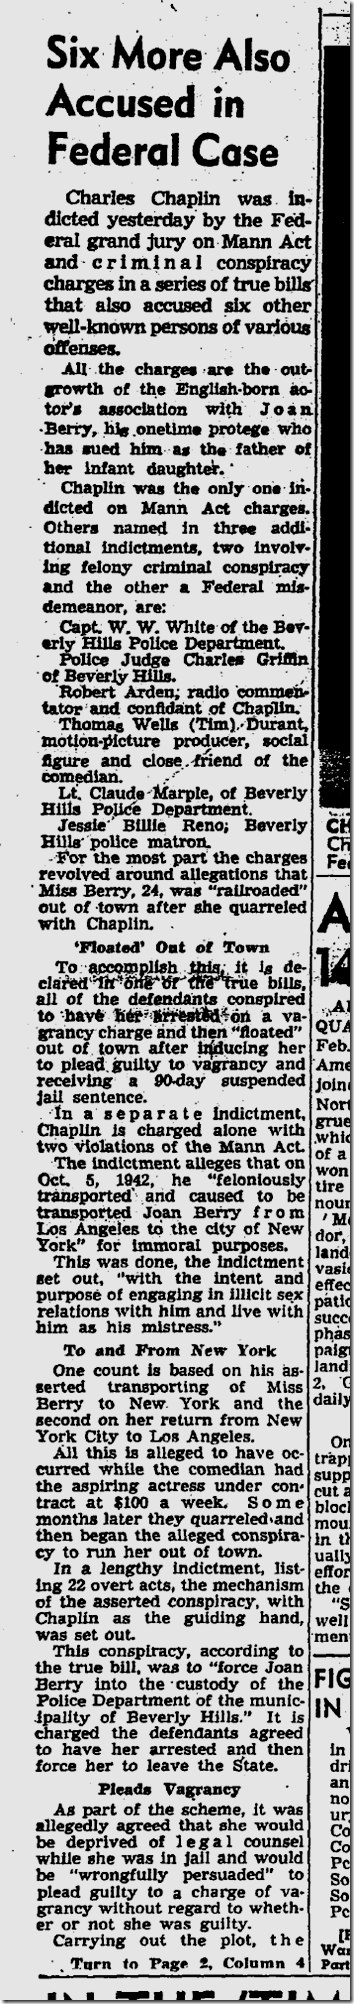 Feb. 11, 1944, Chaplin Indicted